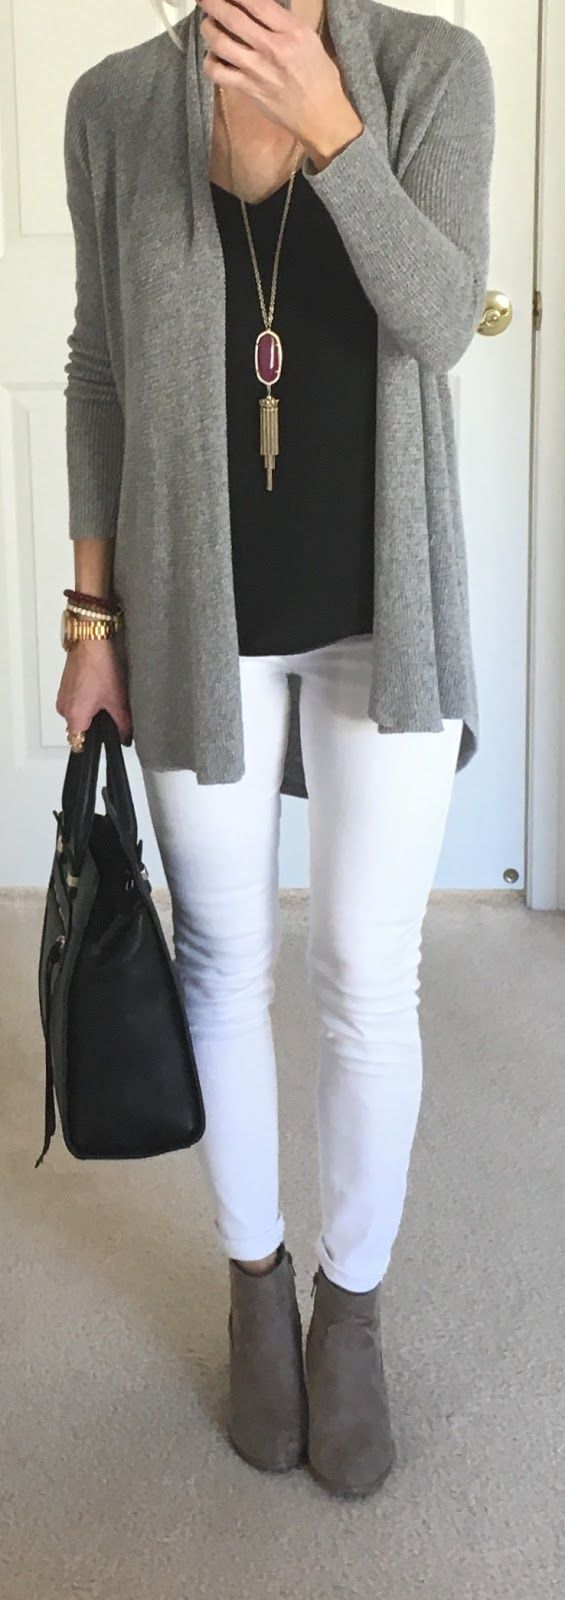 15 cute fall casual work outfits try 4 - 15 cute fall casual work outfits to try